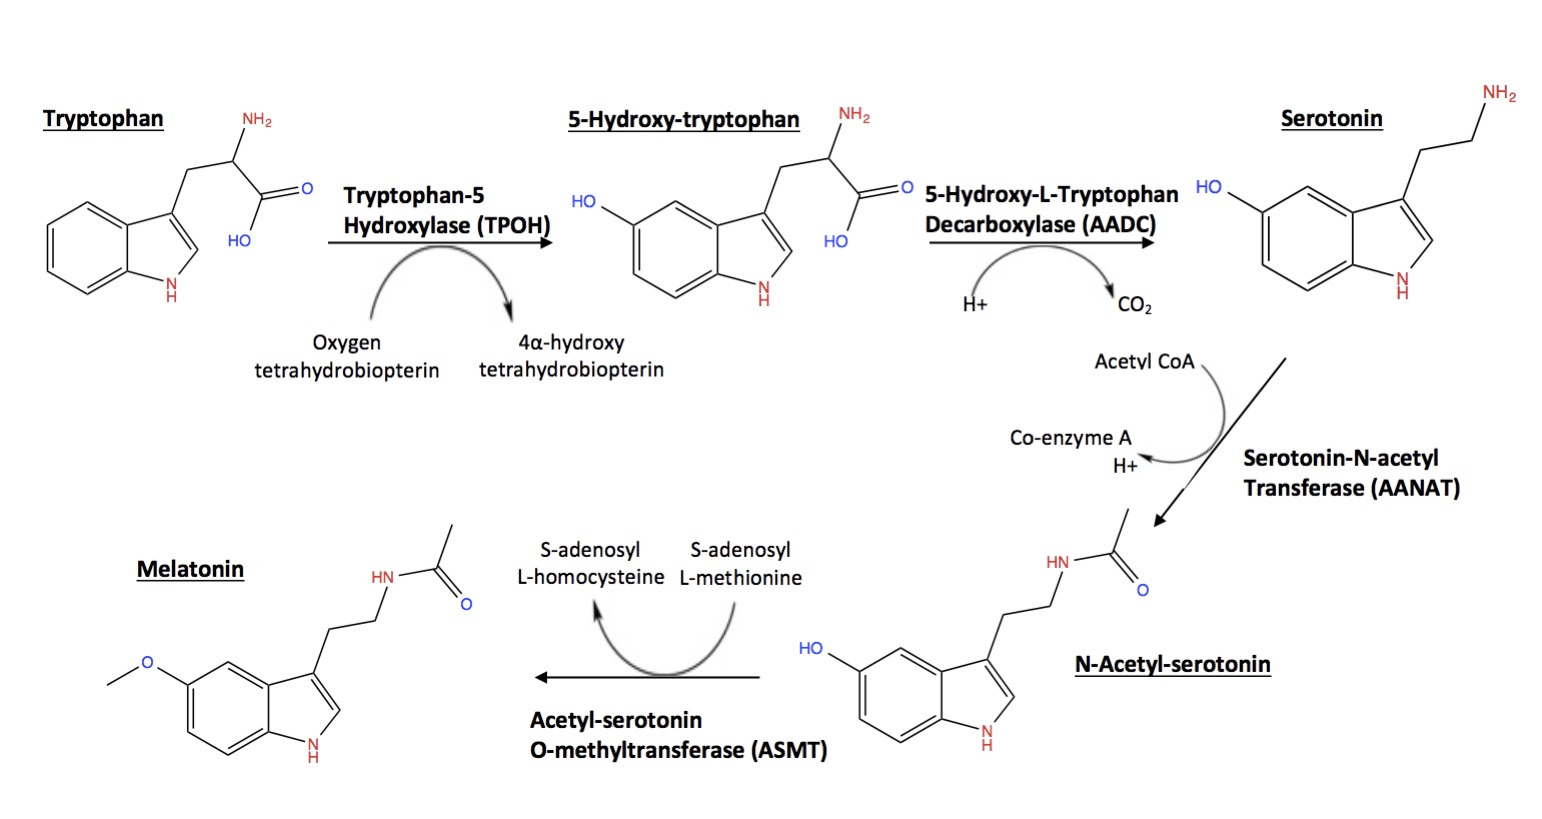 Melatonin Synthesis Pathway , A flowchart showing the synthesis pathway of melatonin from dietary tryptophan. Enzyme names are shown above reaction arrows, and co-factors as well.